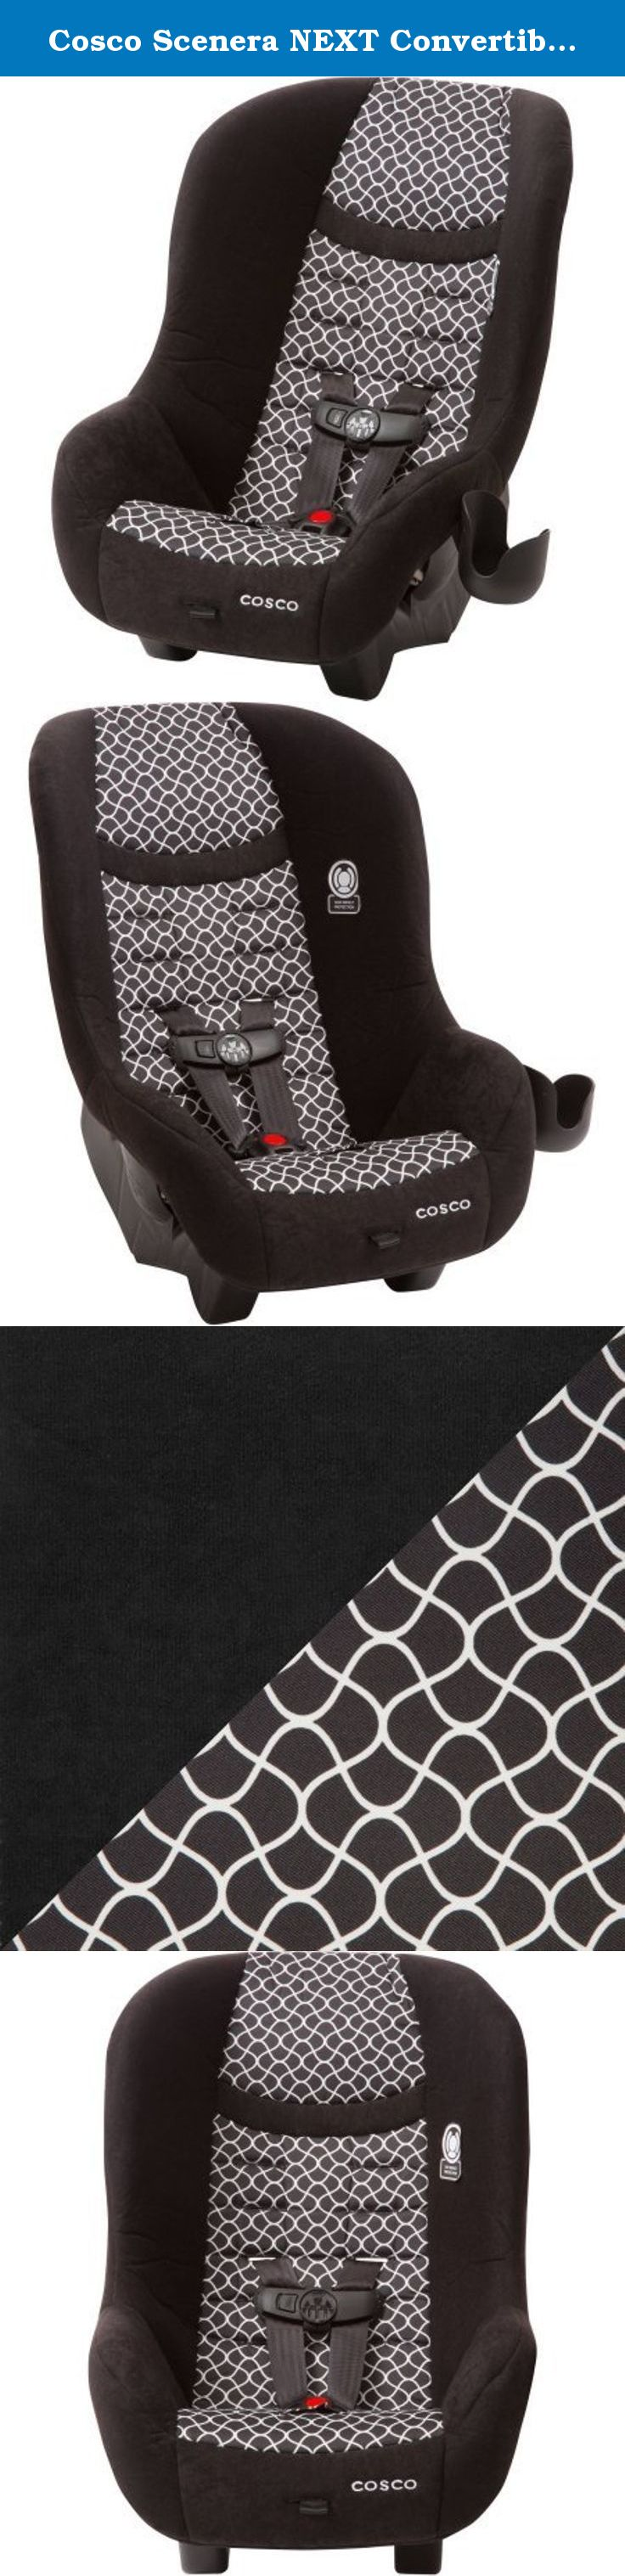 Cosco Scenera NEXT Convertible Car Seat Otto It Keeps Kids Safer With Side Impact